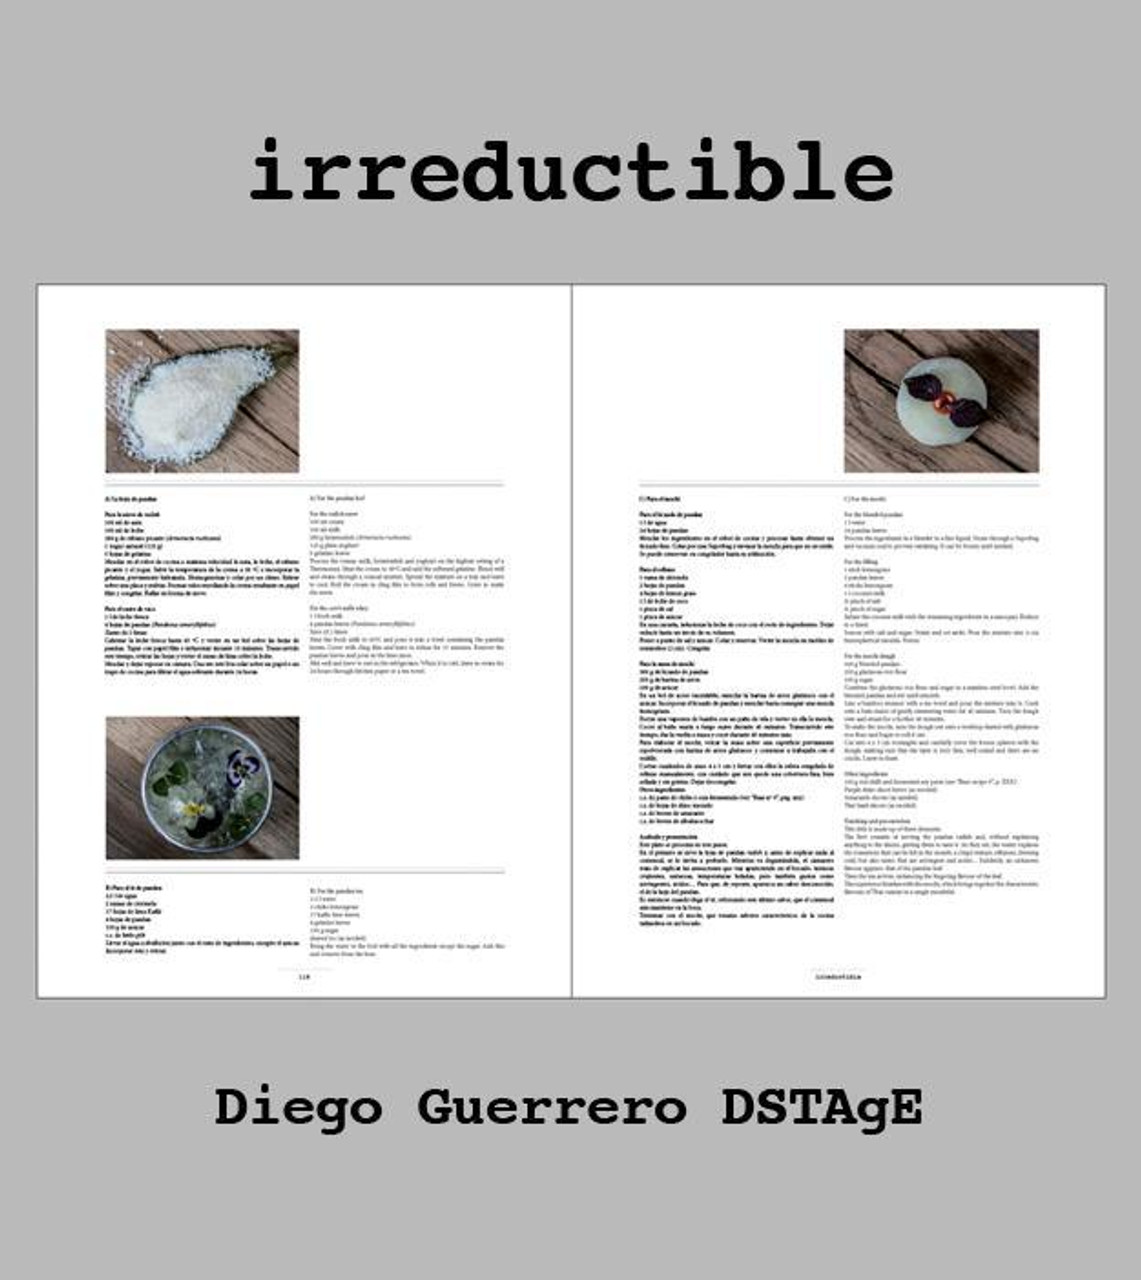 Irreductible - Diego Guerero